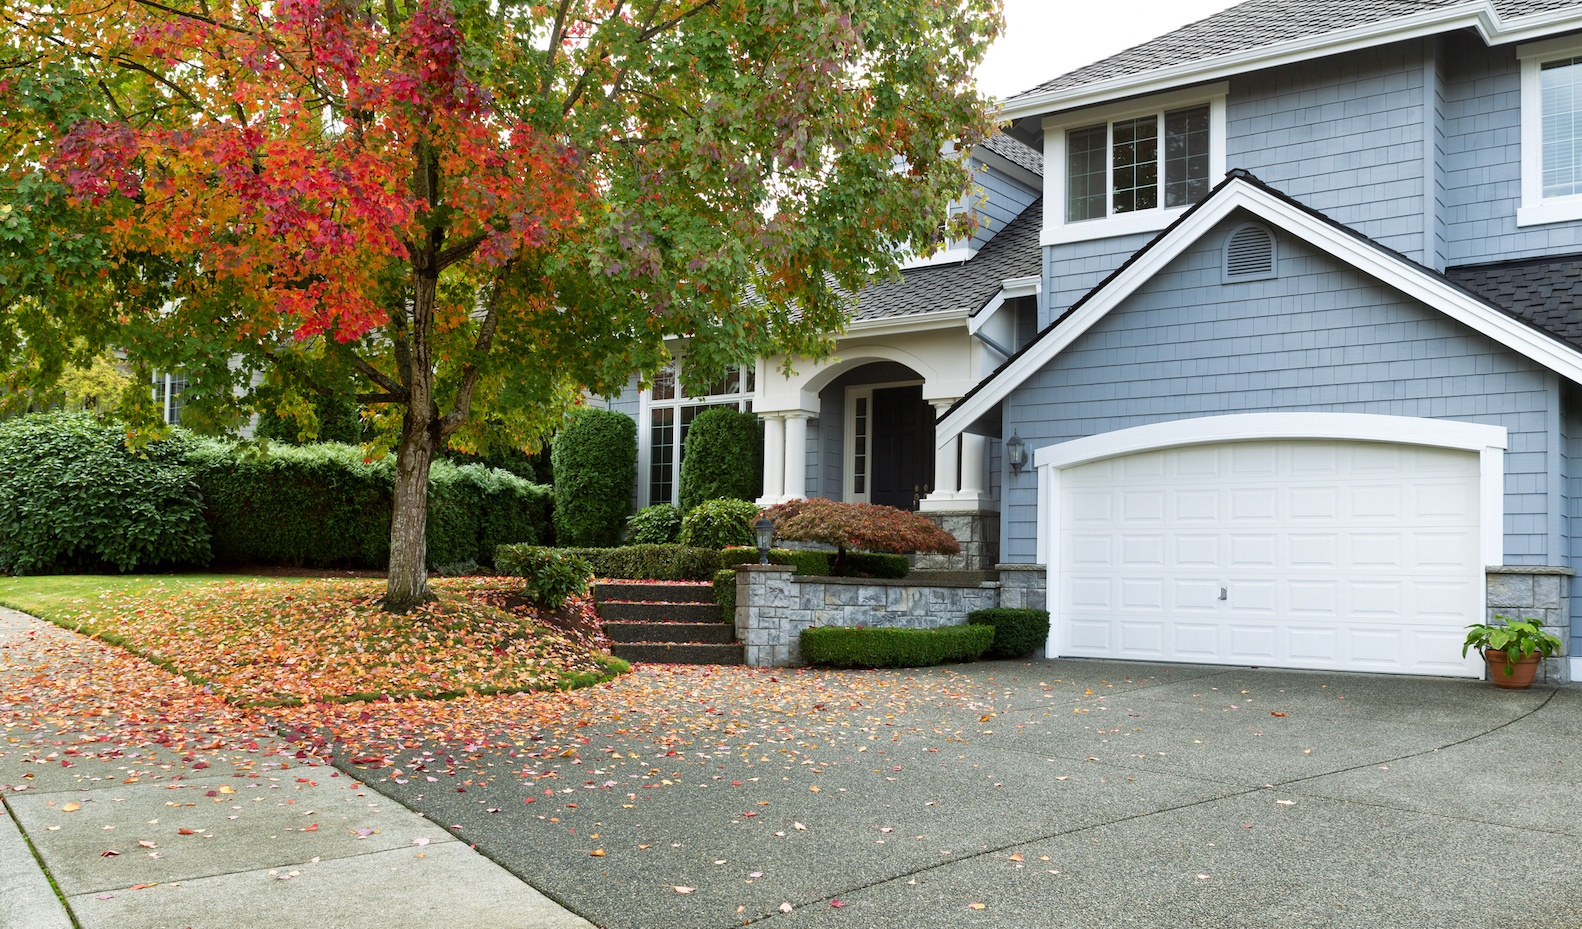 Front yard of house with autumn trees